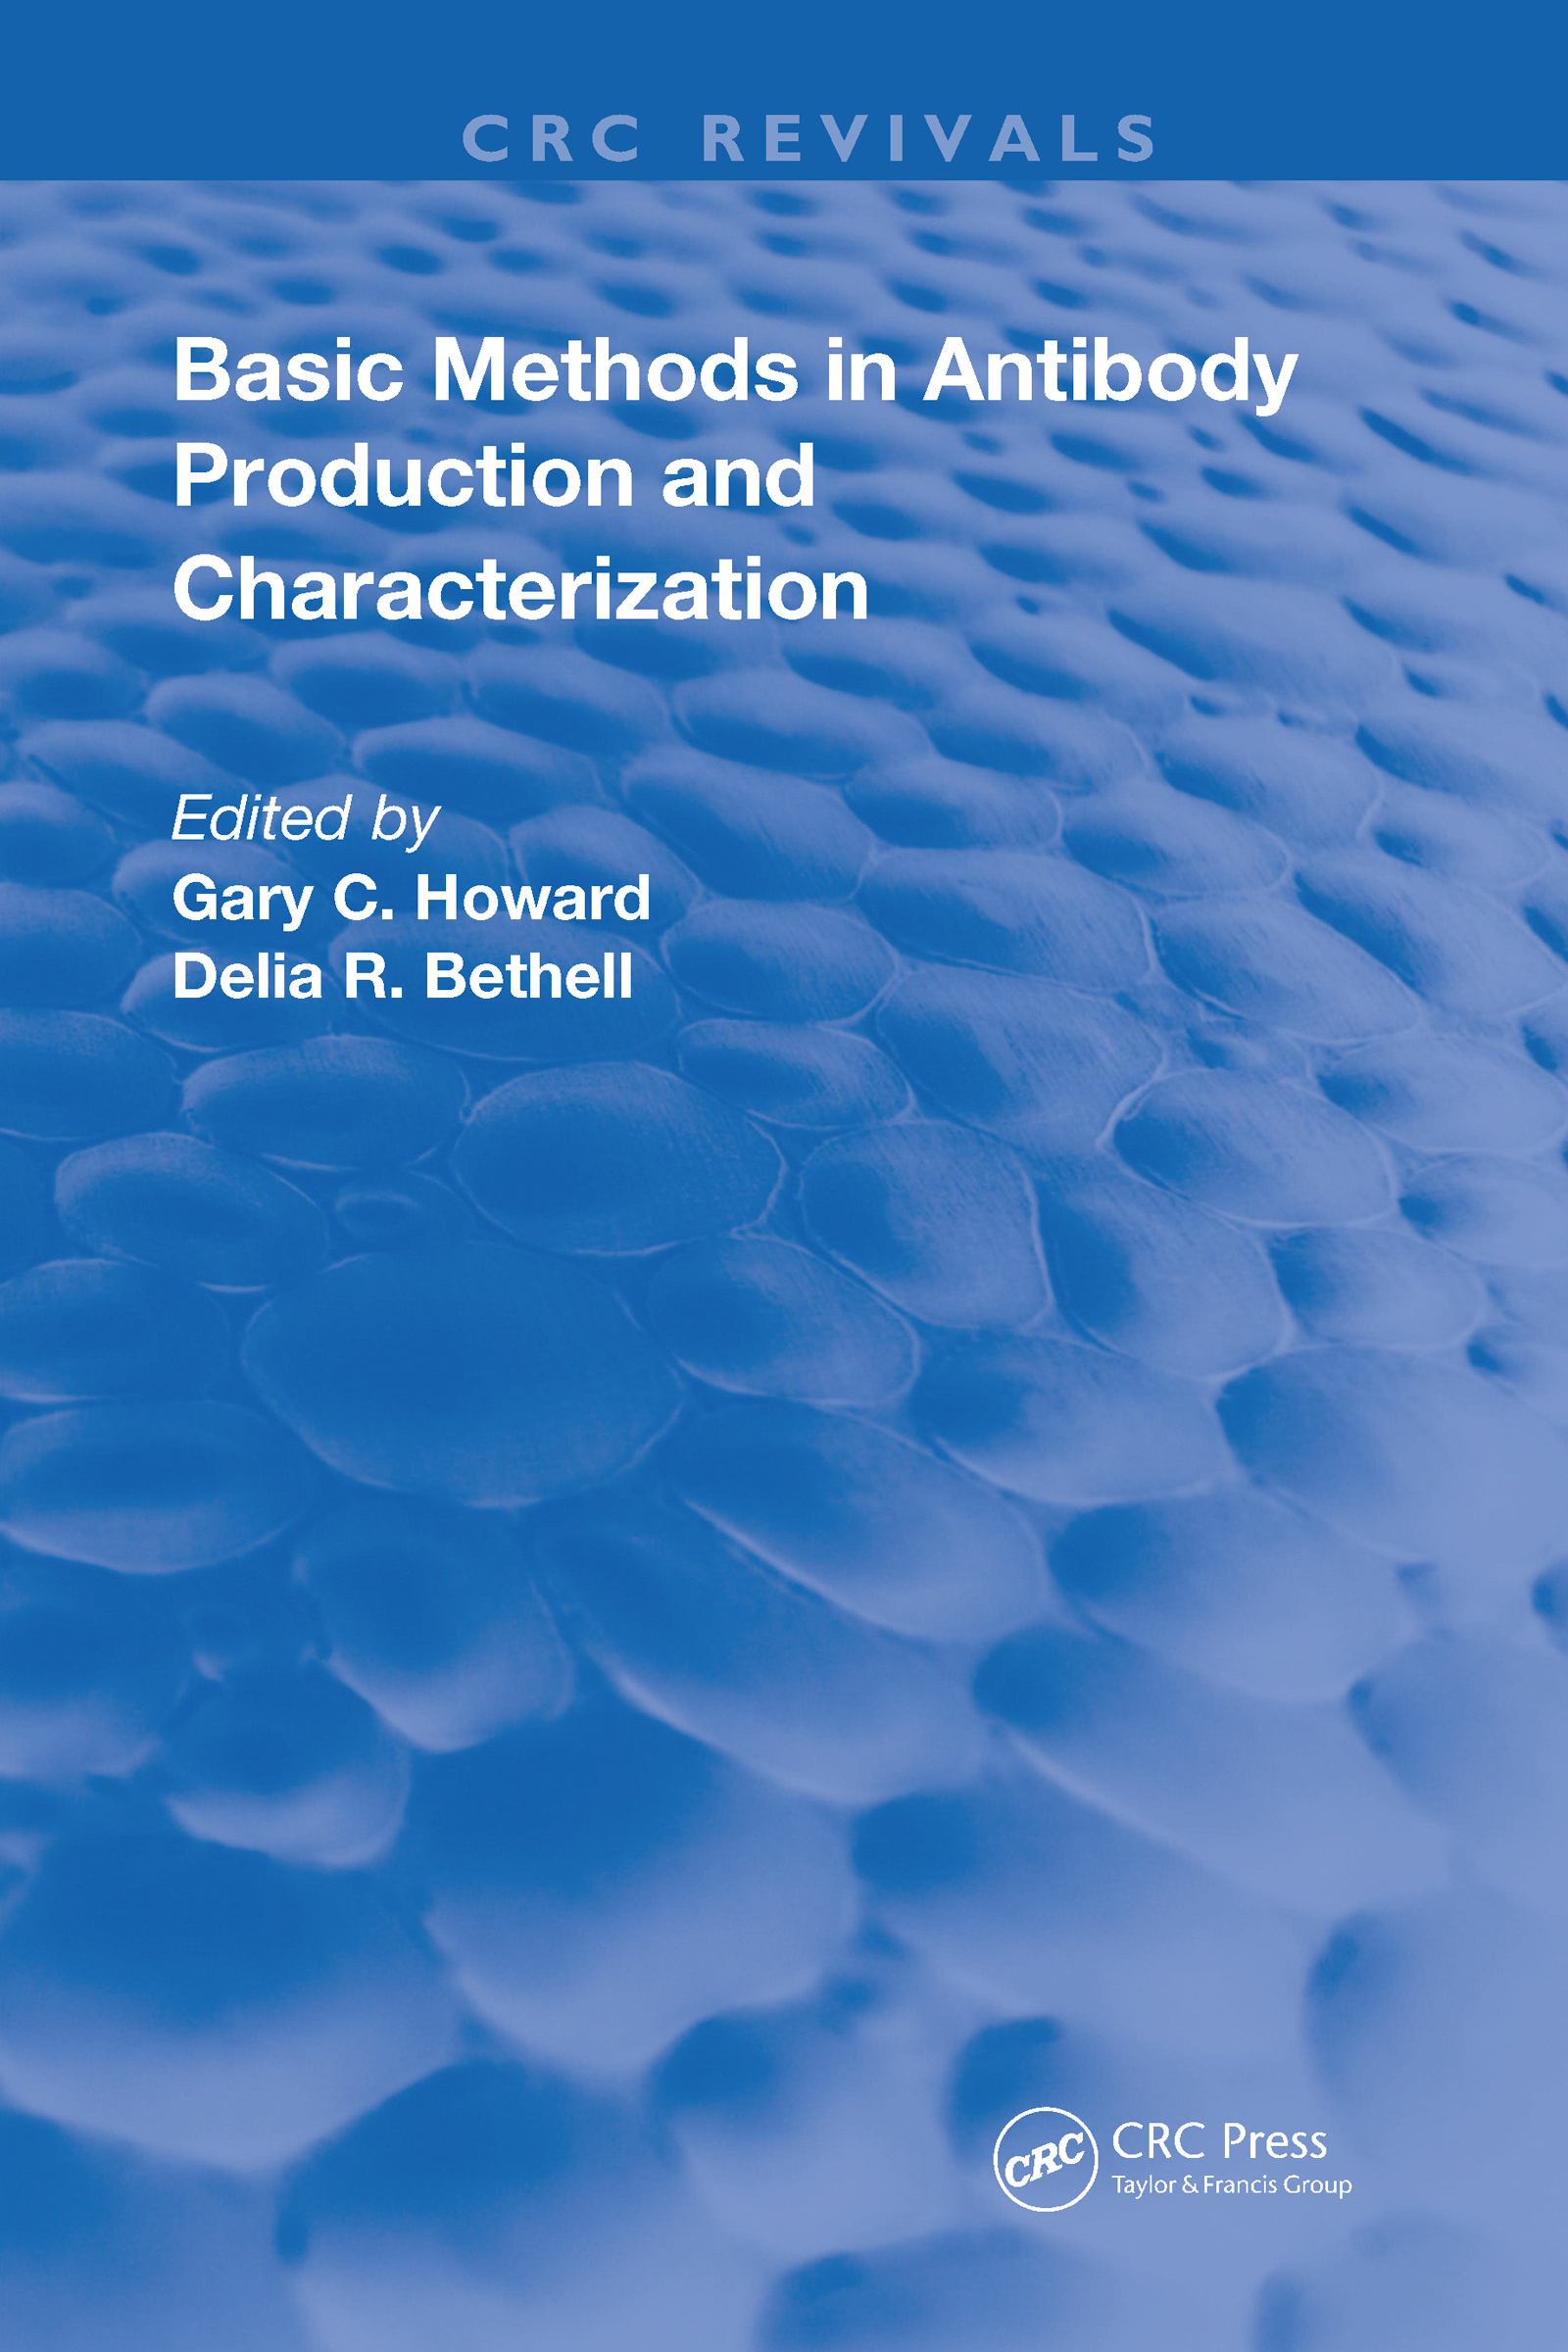 Basic Methods in Antibody Production and Characterization book cover